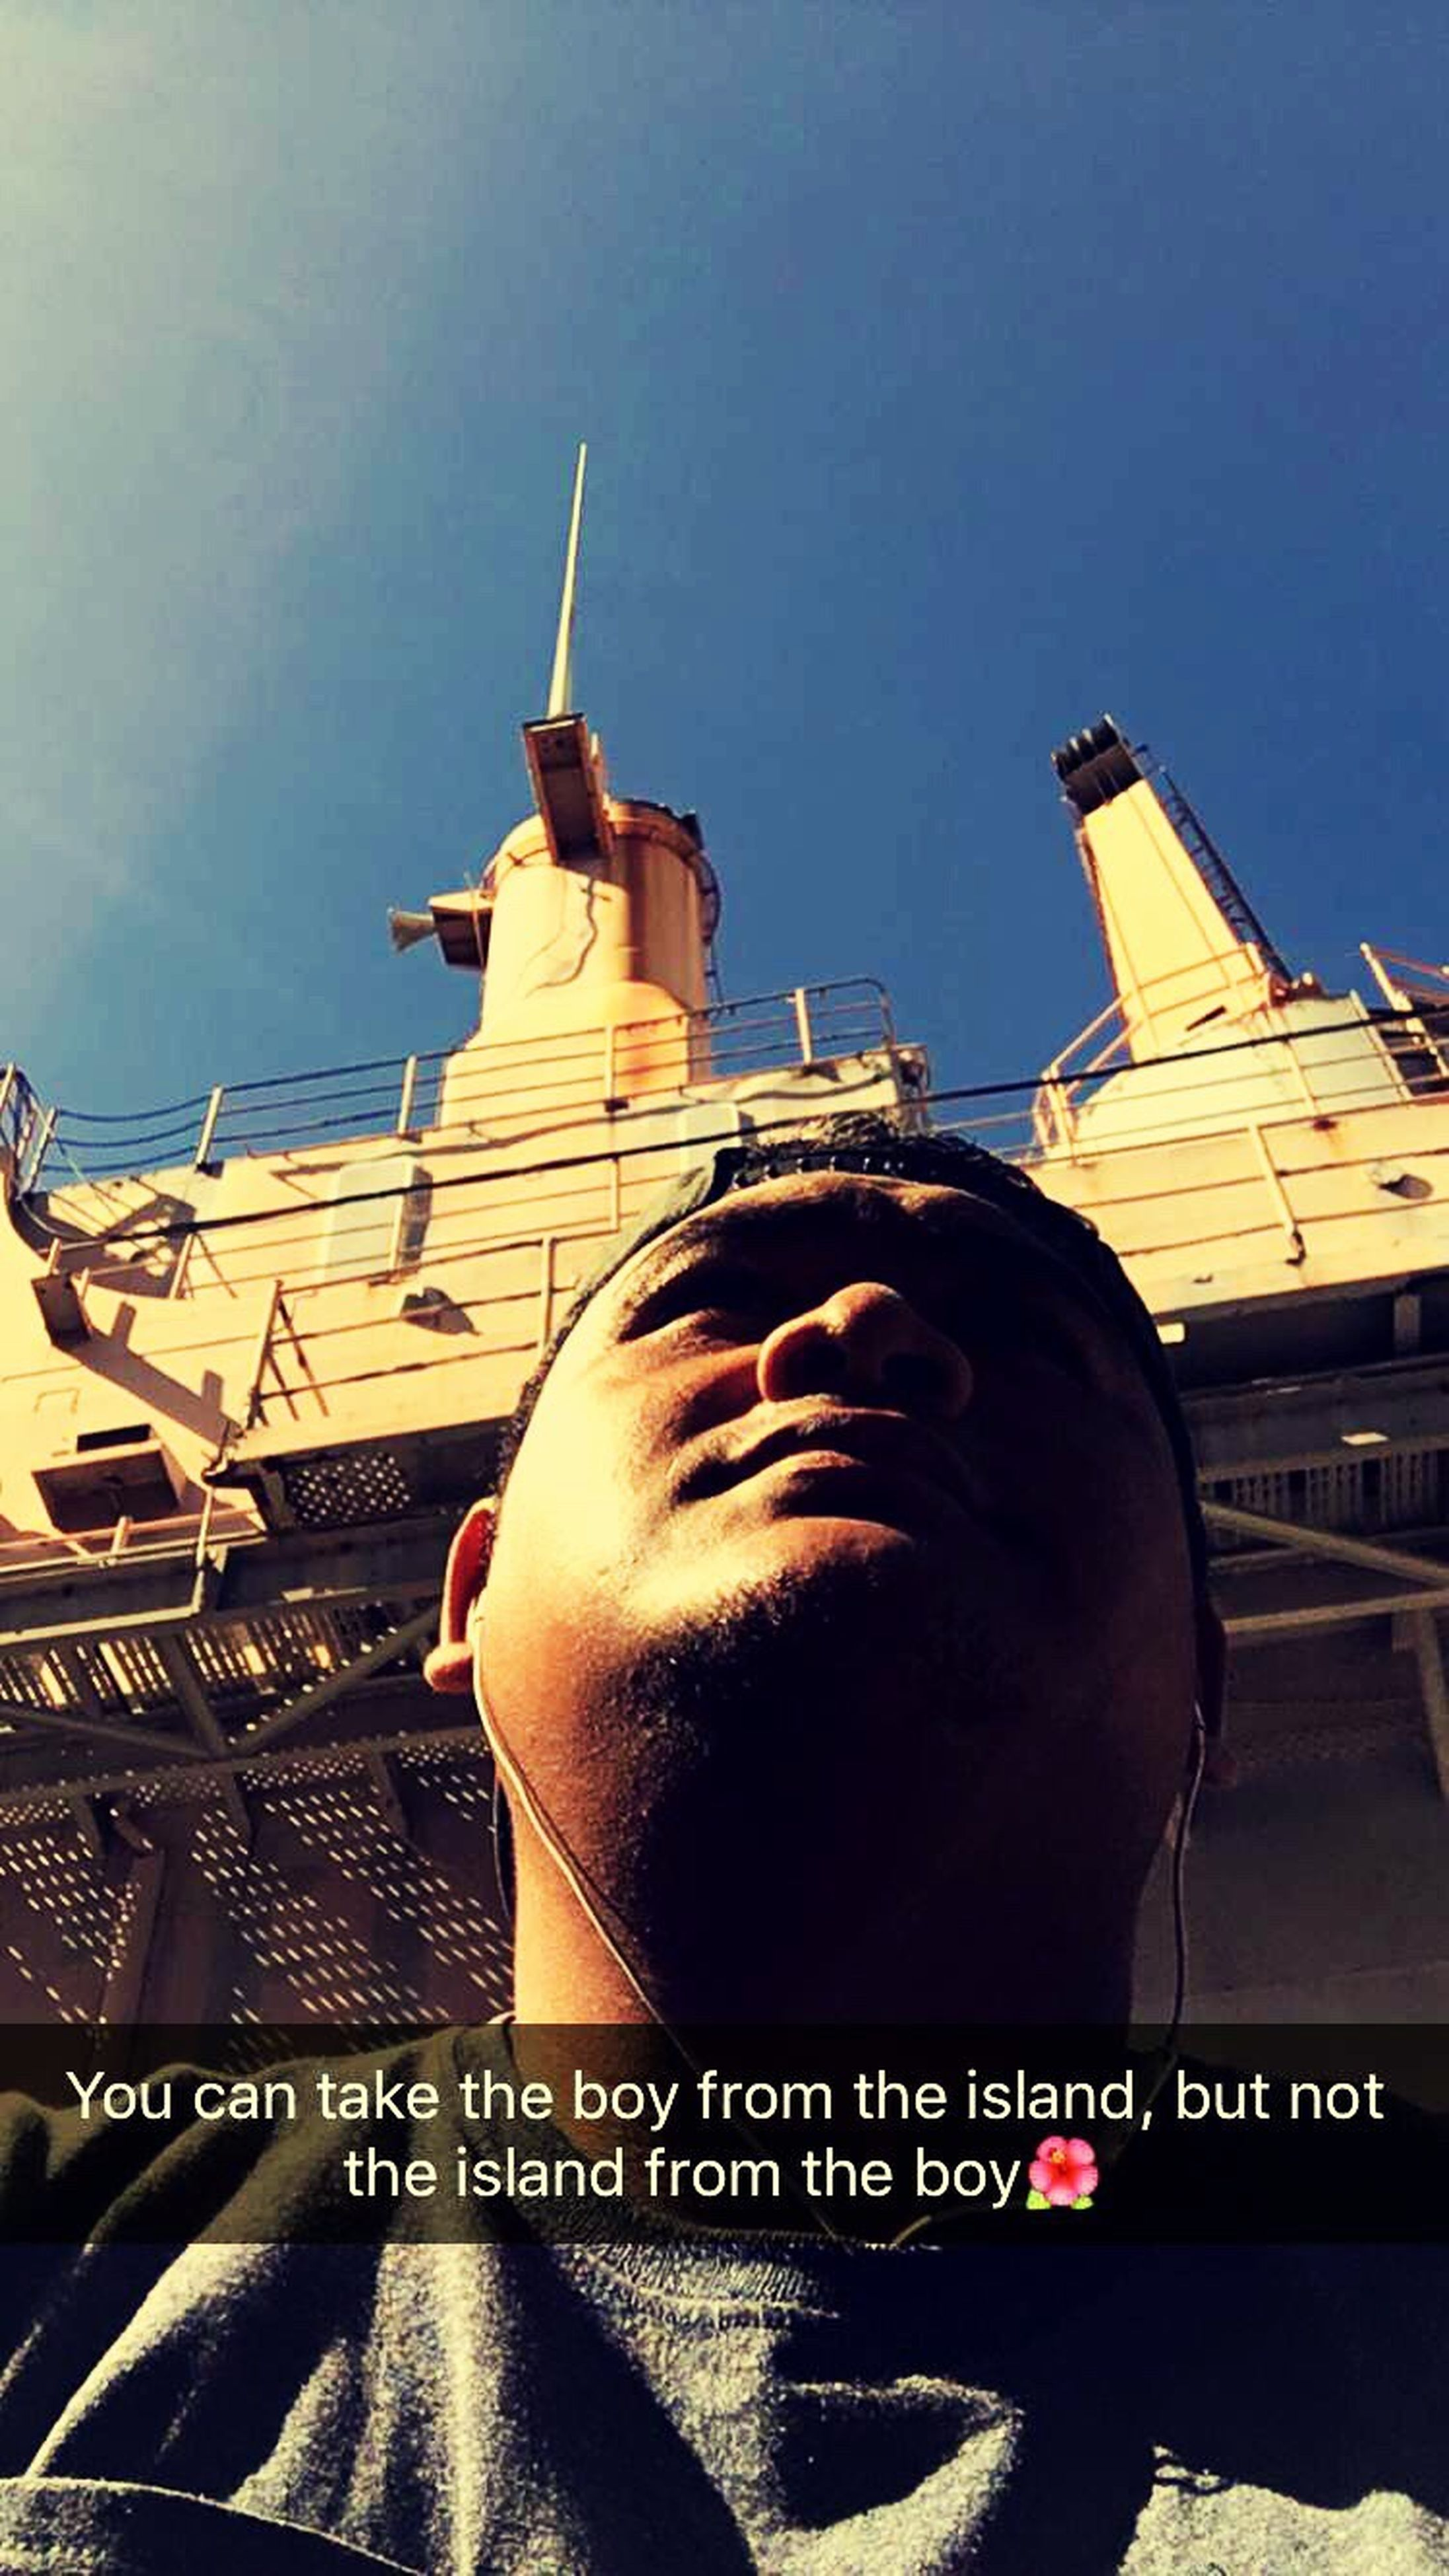 architecture, built structure, building exterior, low angle view, clear sky, lifestyles, young adult, leisure activity, city, sunlight, sky, blue, young men, communication, outdoors, day, standing, men